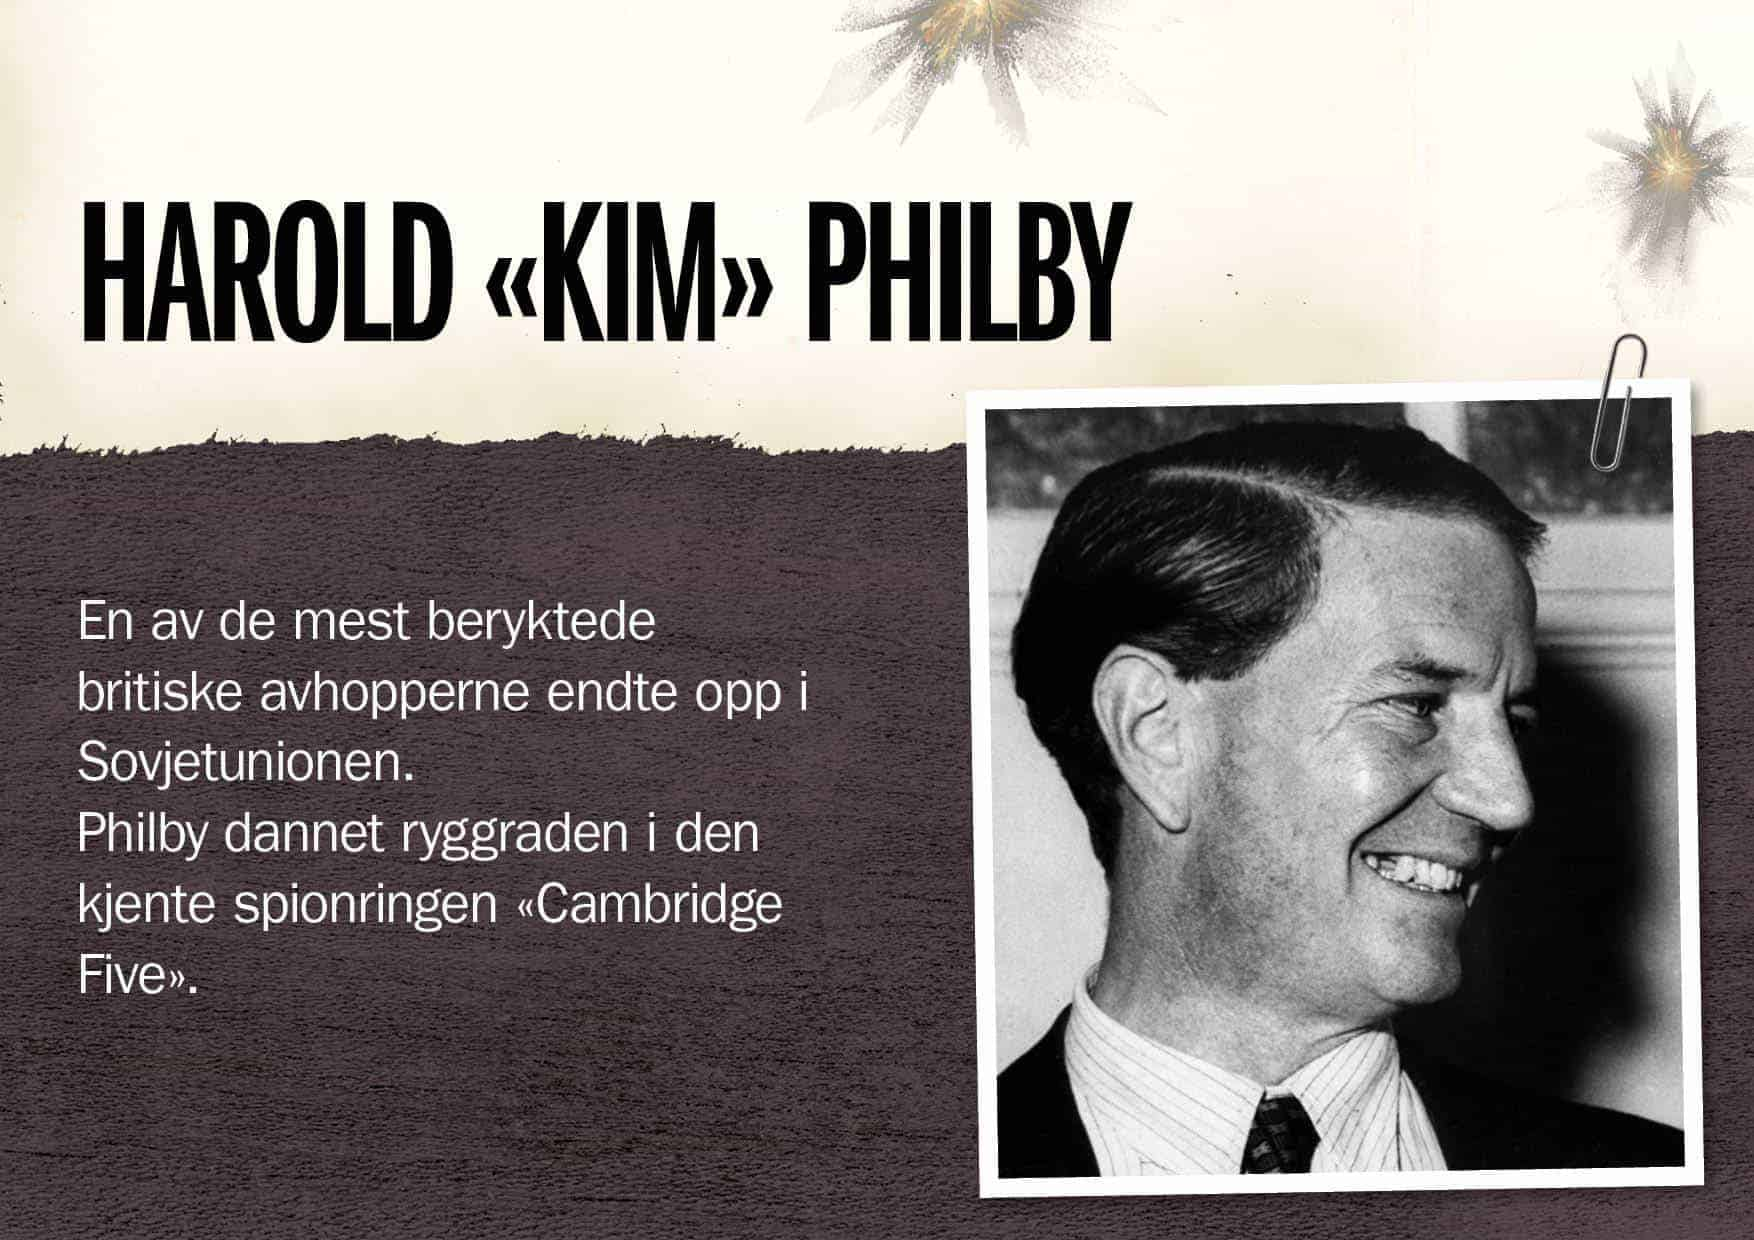 Superspioner: Harold «Kim» Philby